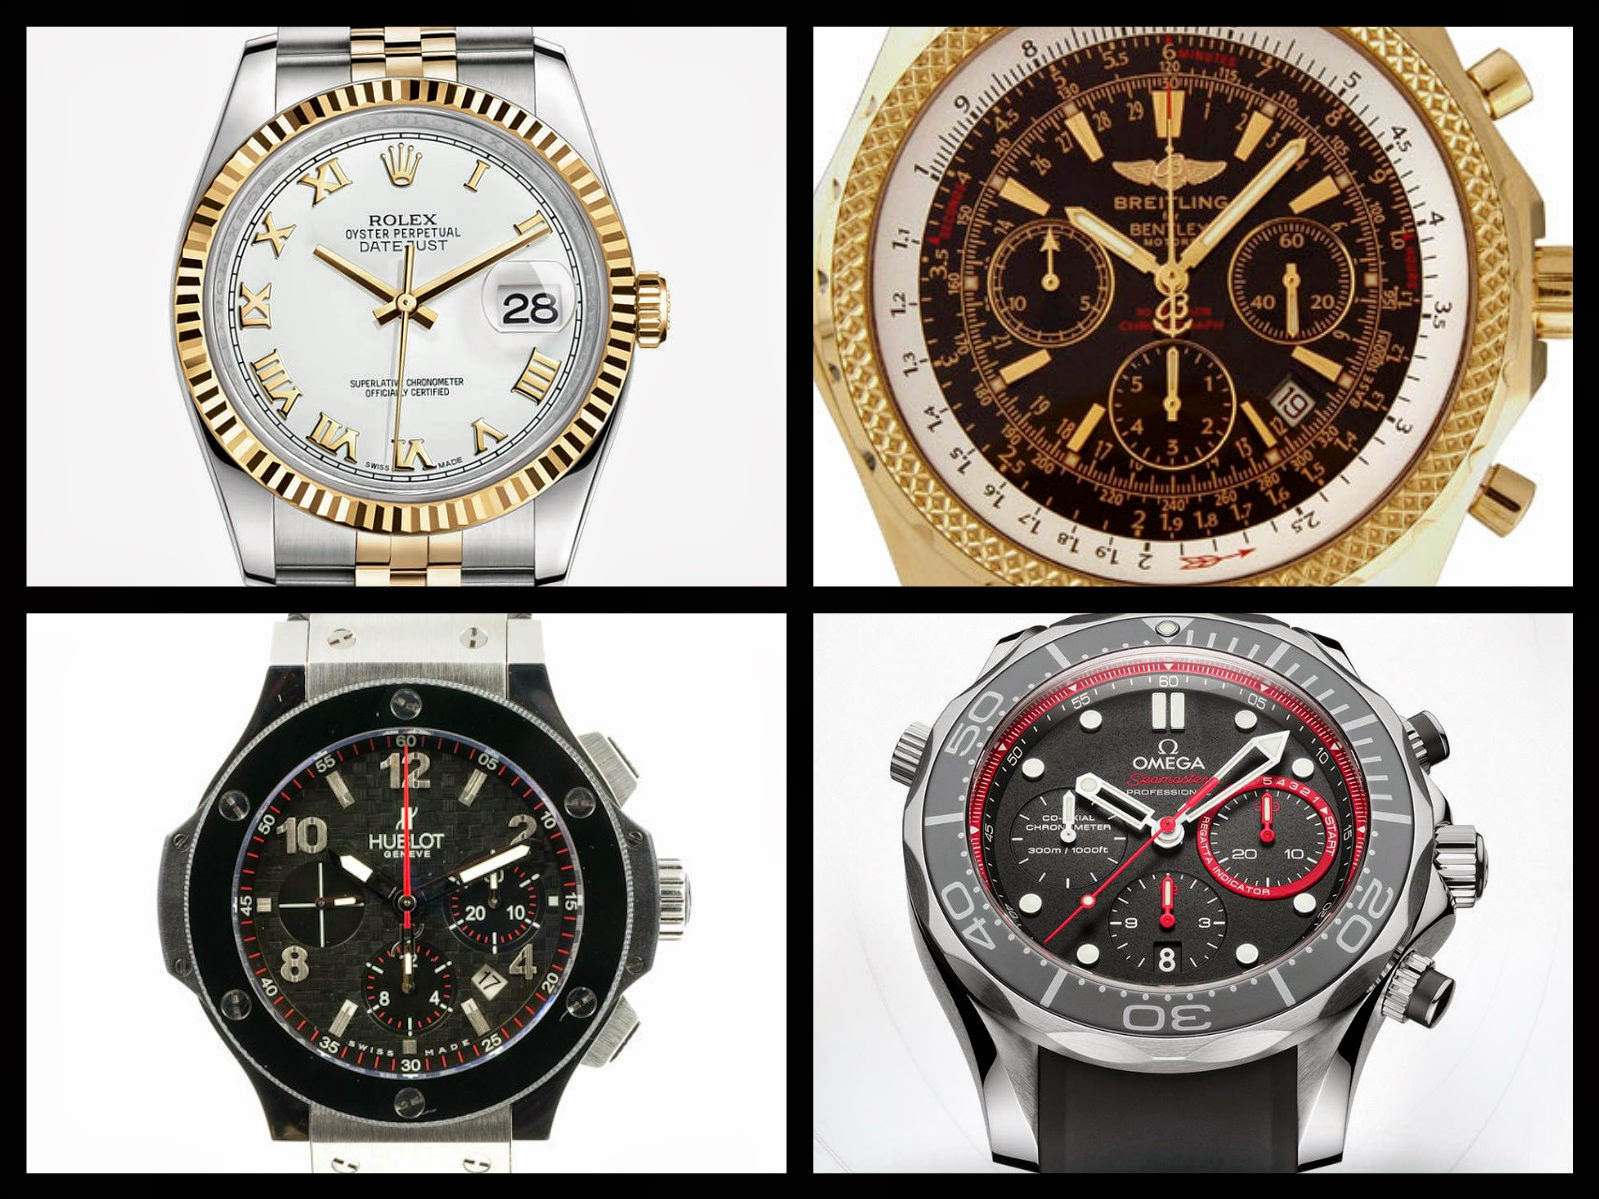 Which swiss replica watch companies spent the most on advertising in 2013?